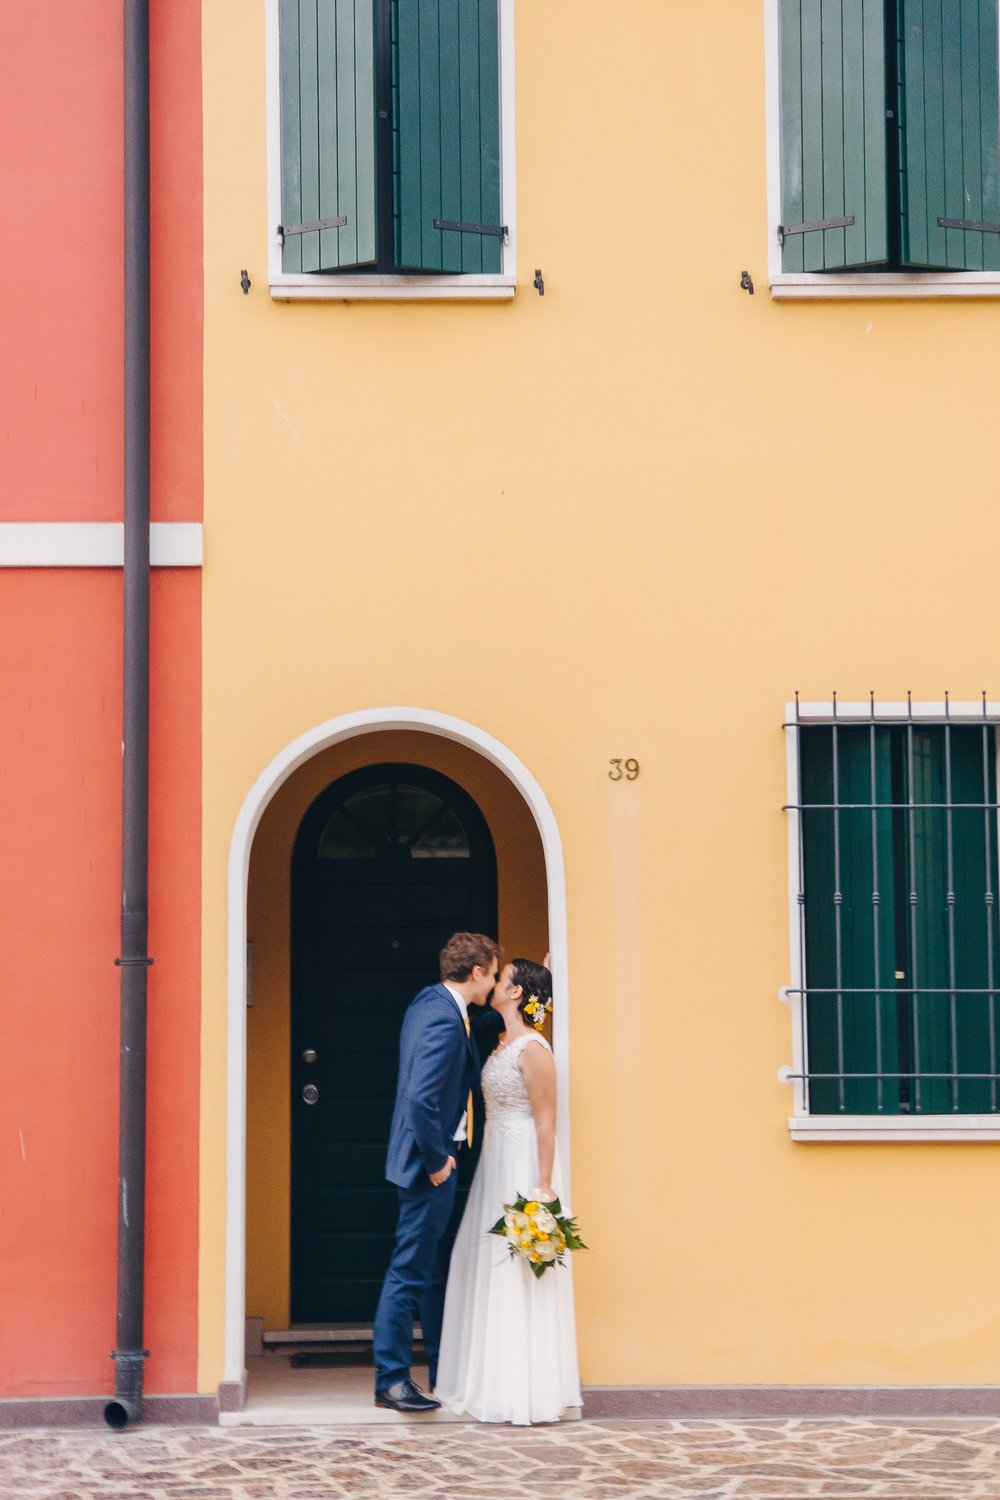 """You were present in every moment, shooting beautiful photos without even making us notice."" - Stefano & Sophie, Italy"